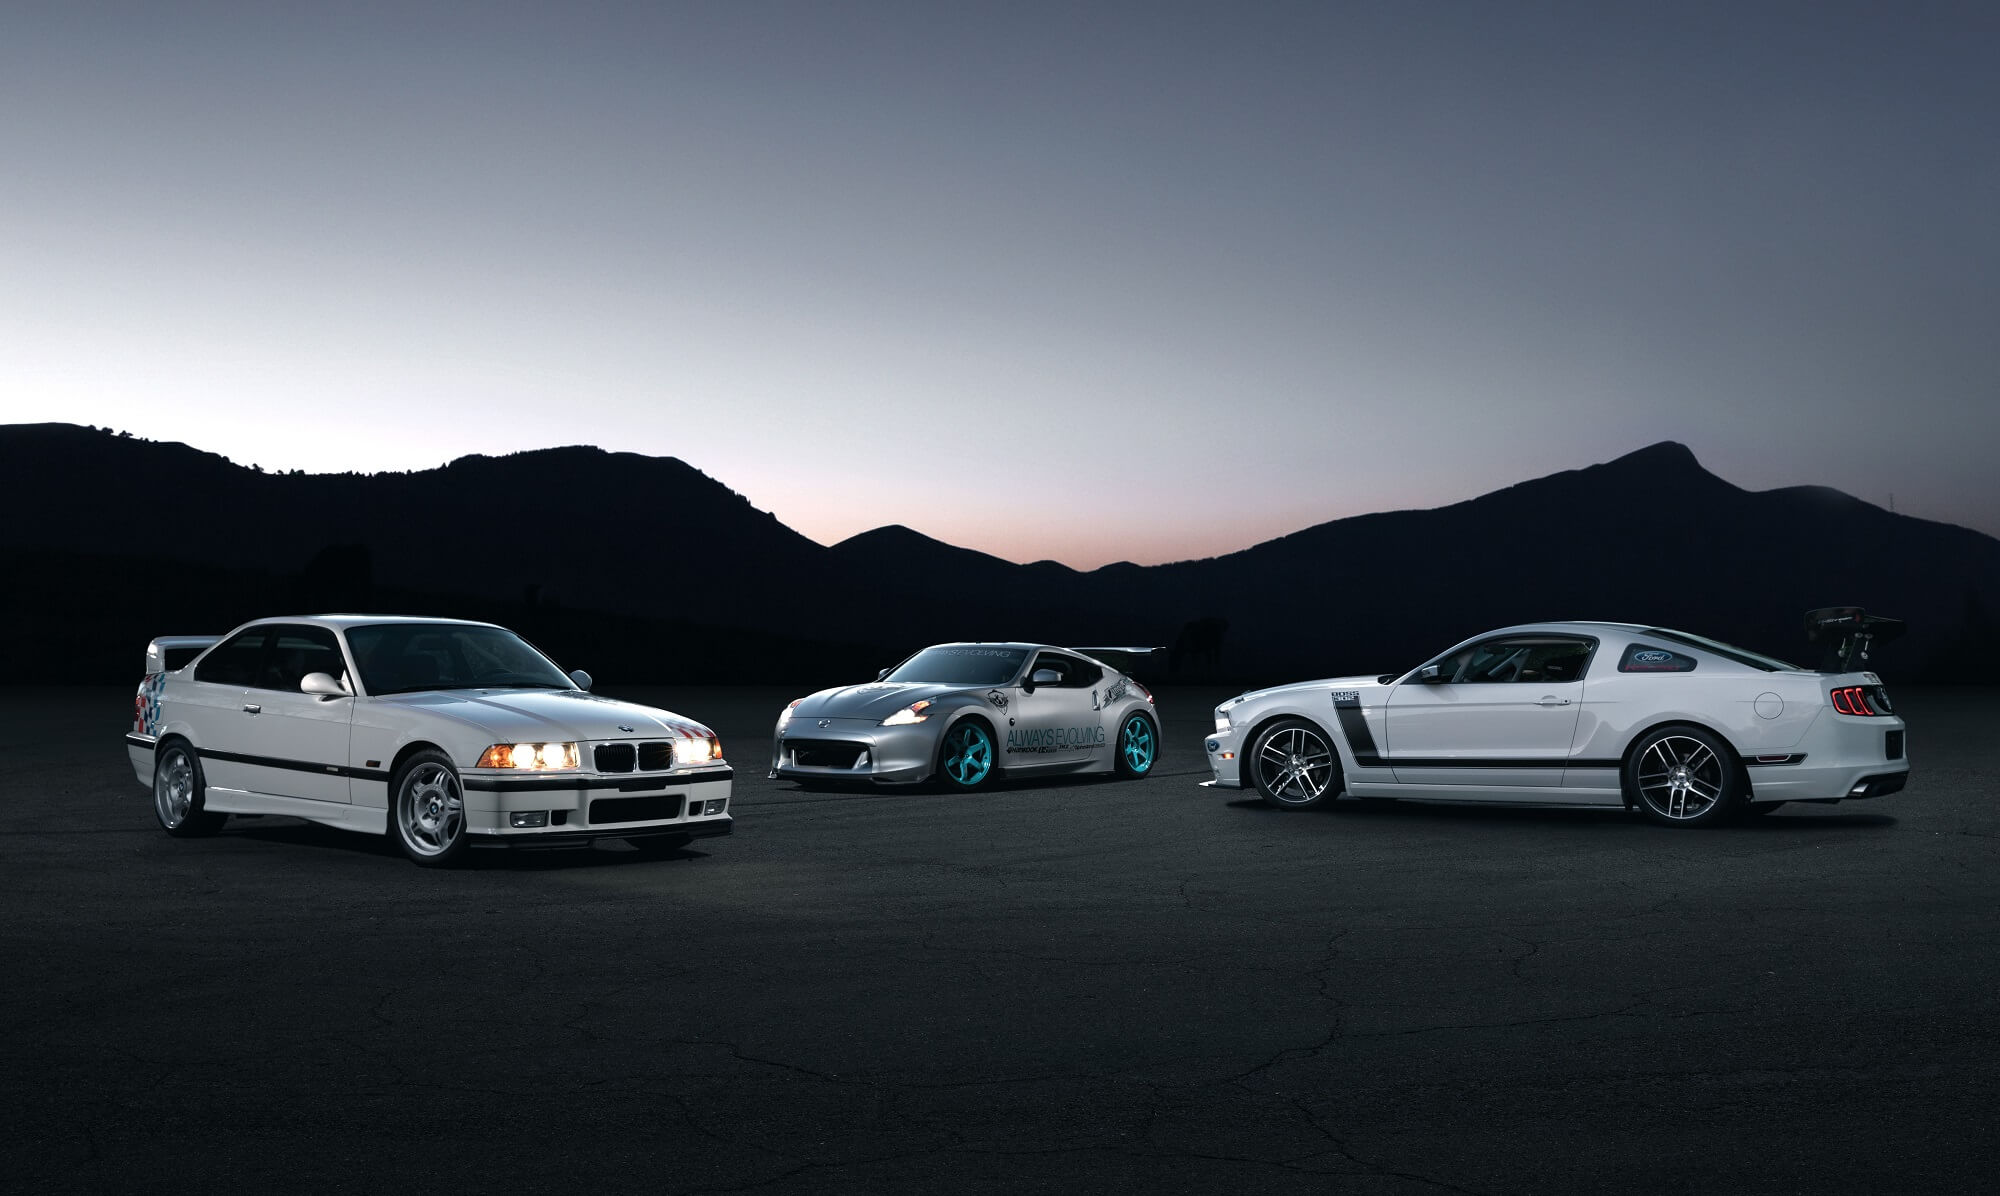 BMW M3 Lightweight, Nissan 370Z, Ford Mustang Boss S302